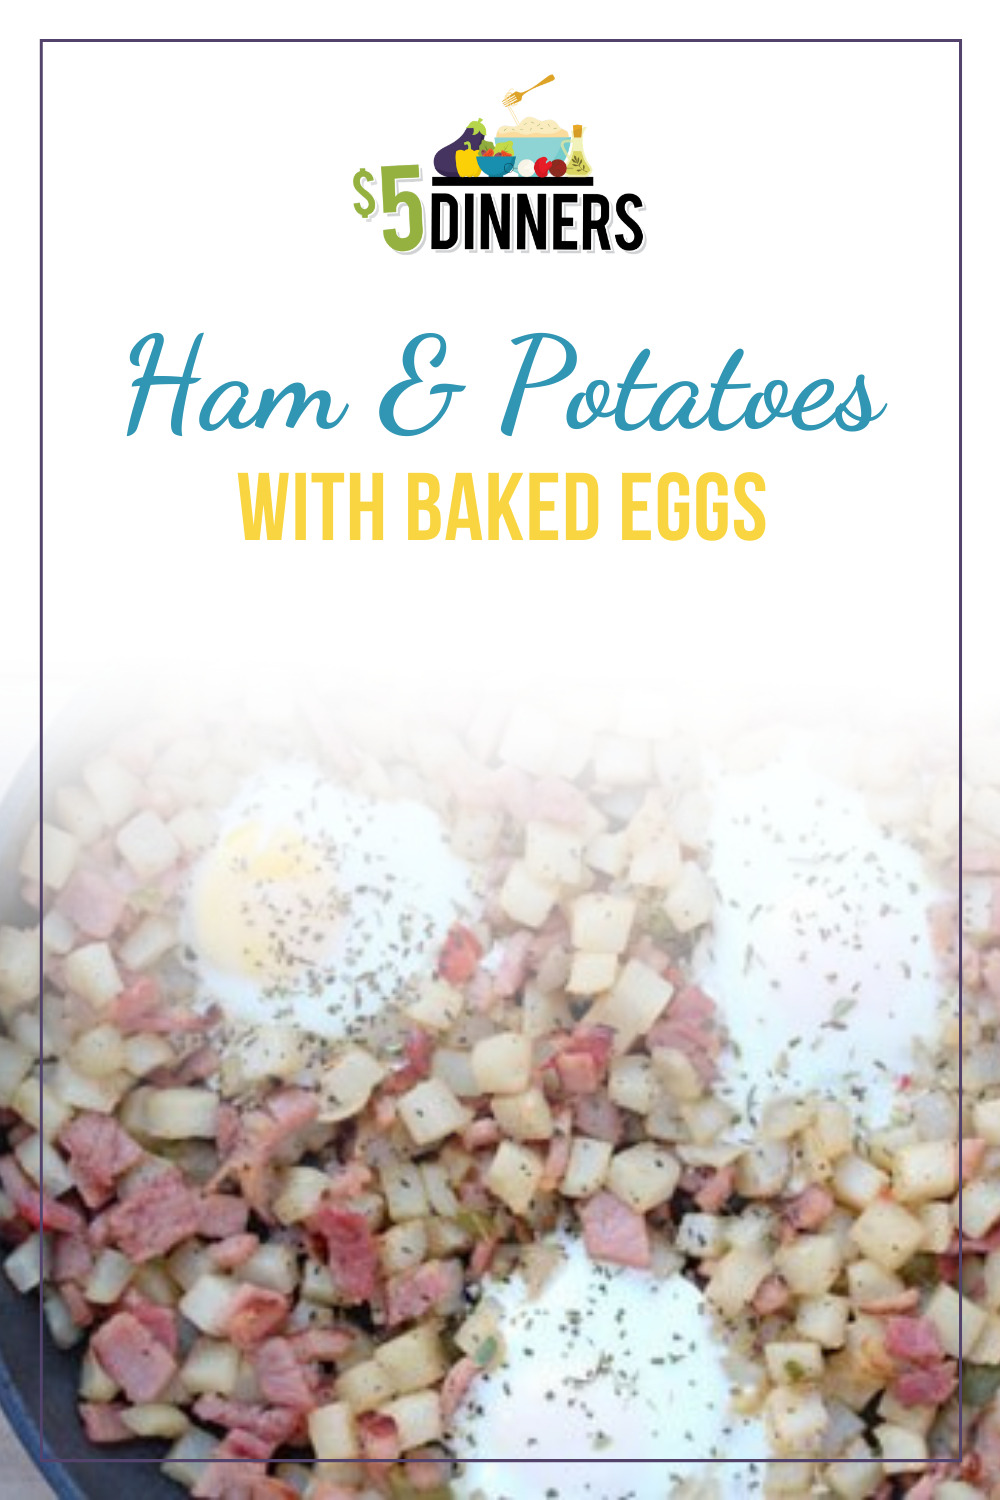 ham & potatoes with baked eggs